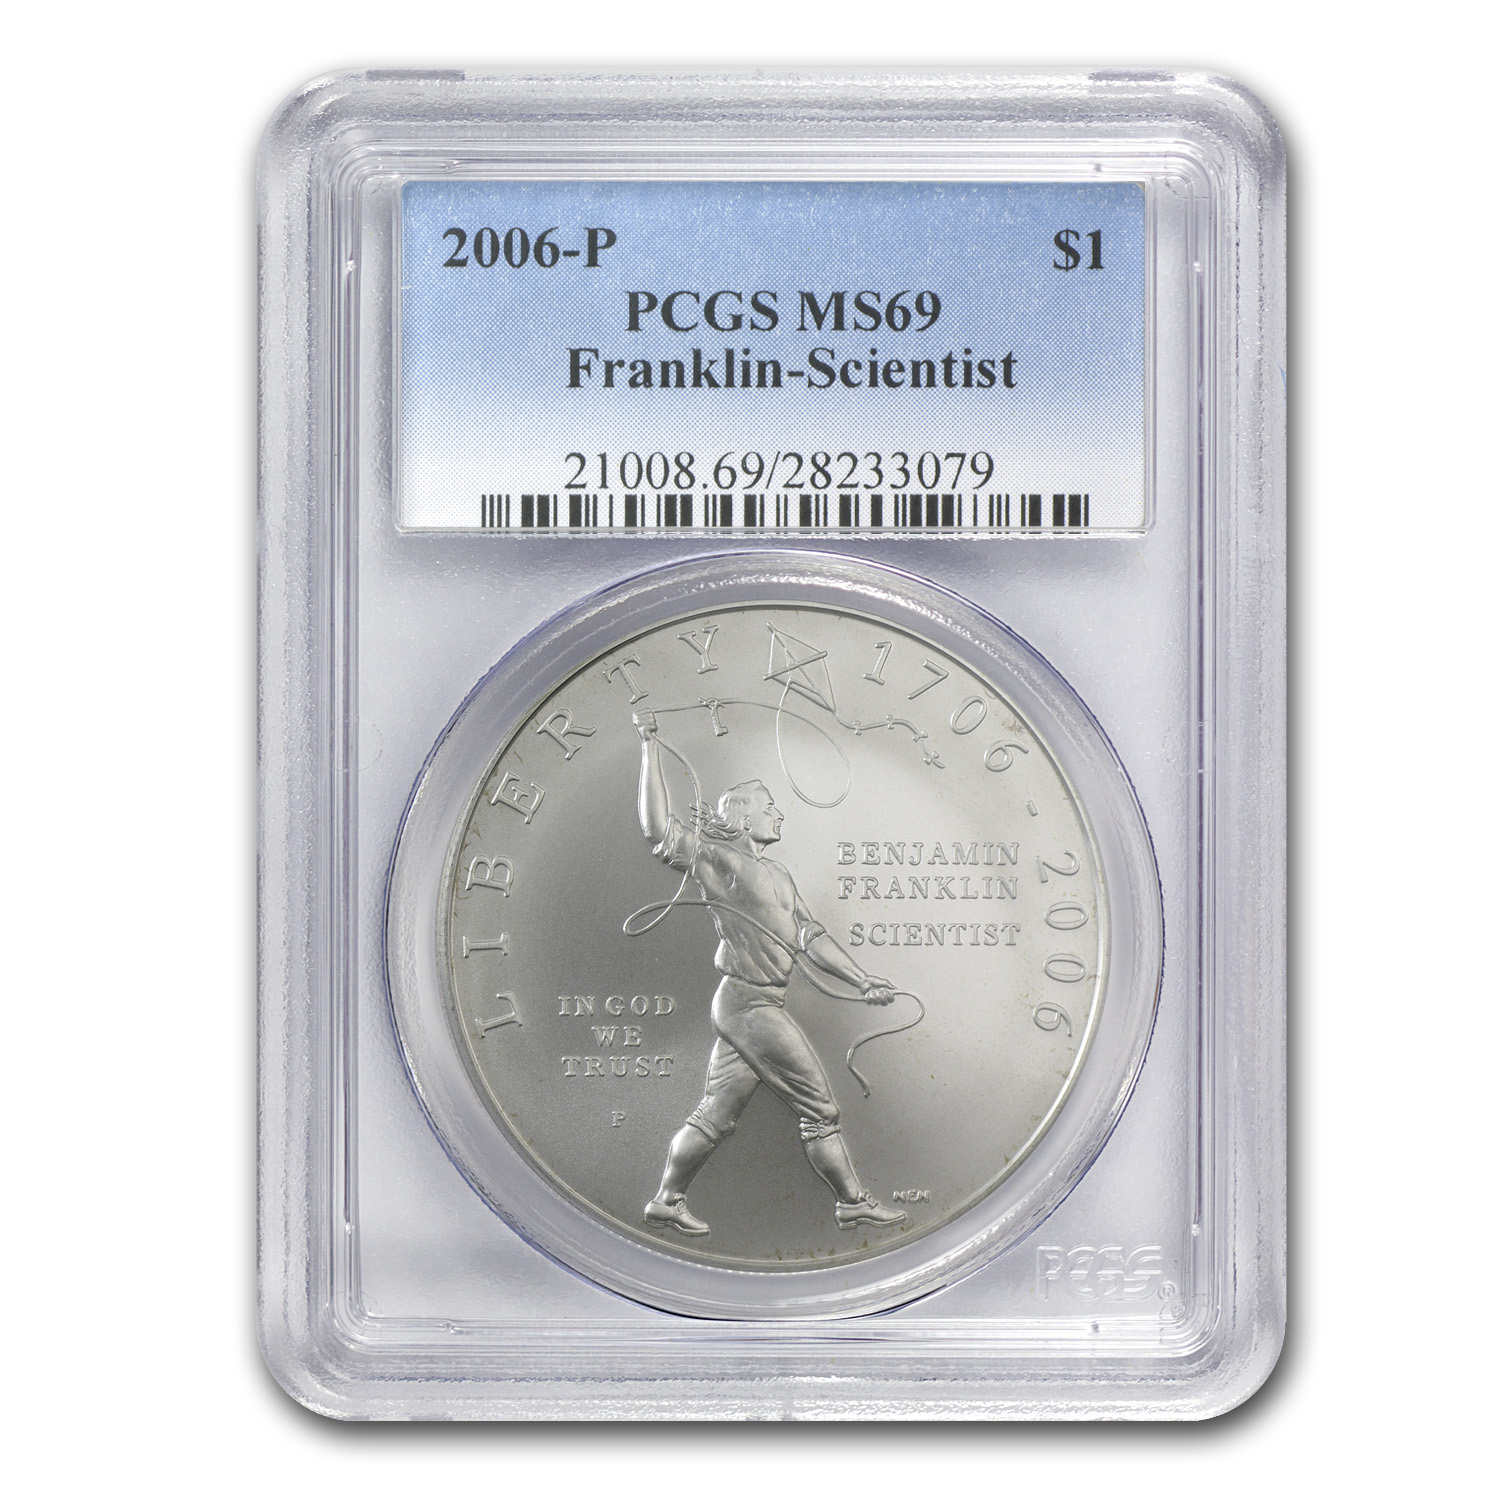 2006-P Ben Franklin Scientist $1 Silver Commem MS-69 PCGS